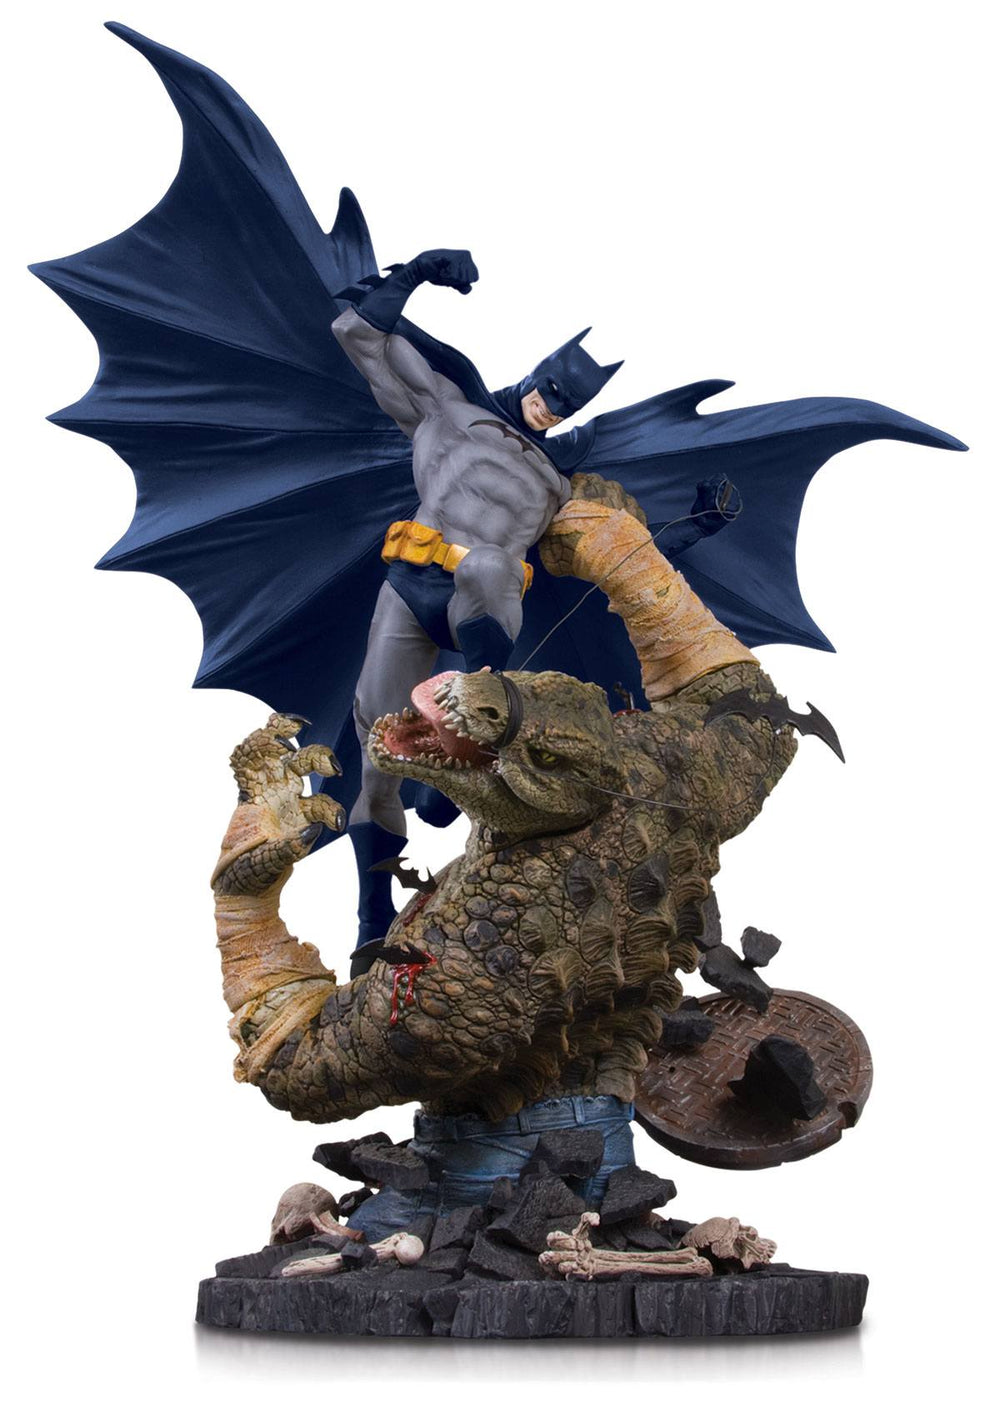 DC Collectibles DC Comics Batman vs. Killer Croc Mini Battle Statue